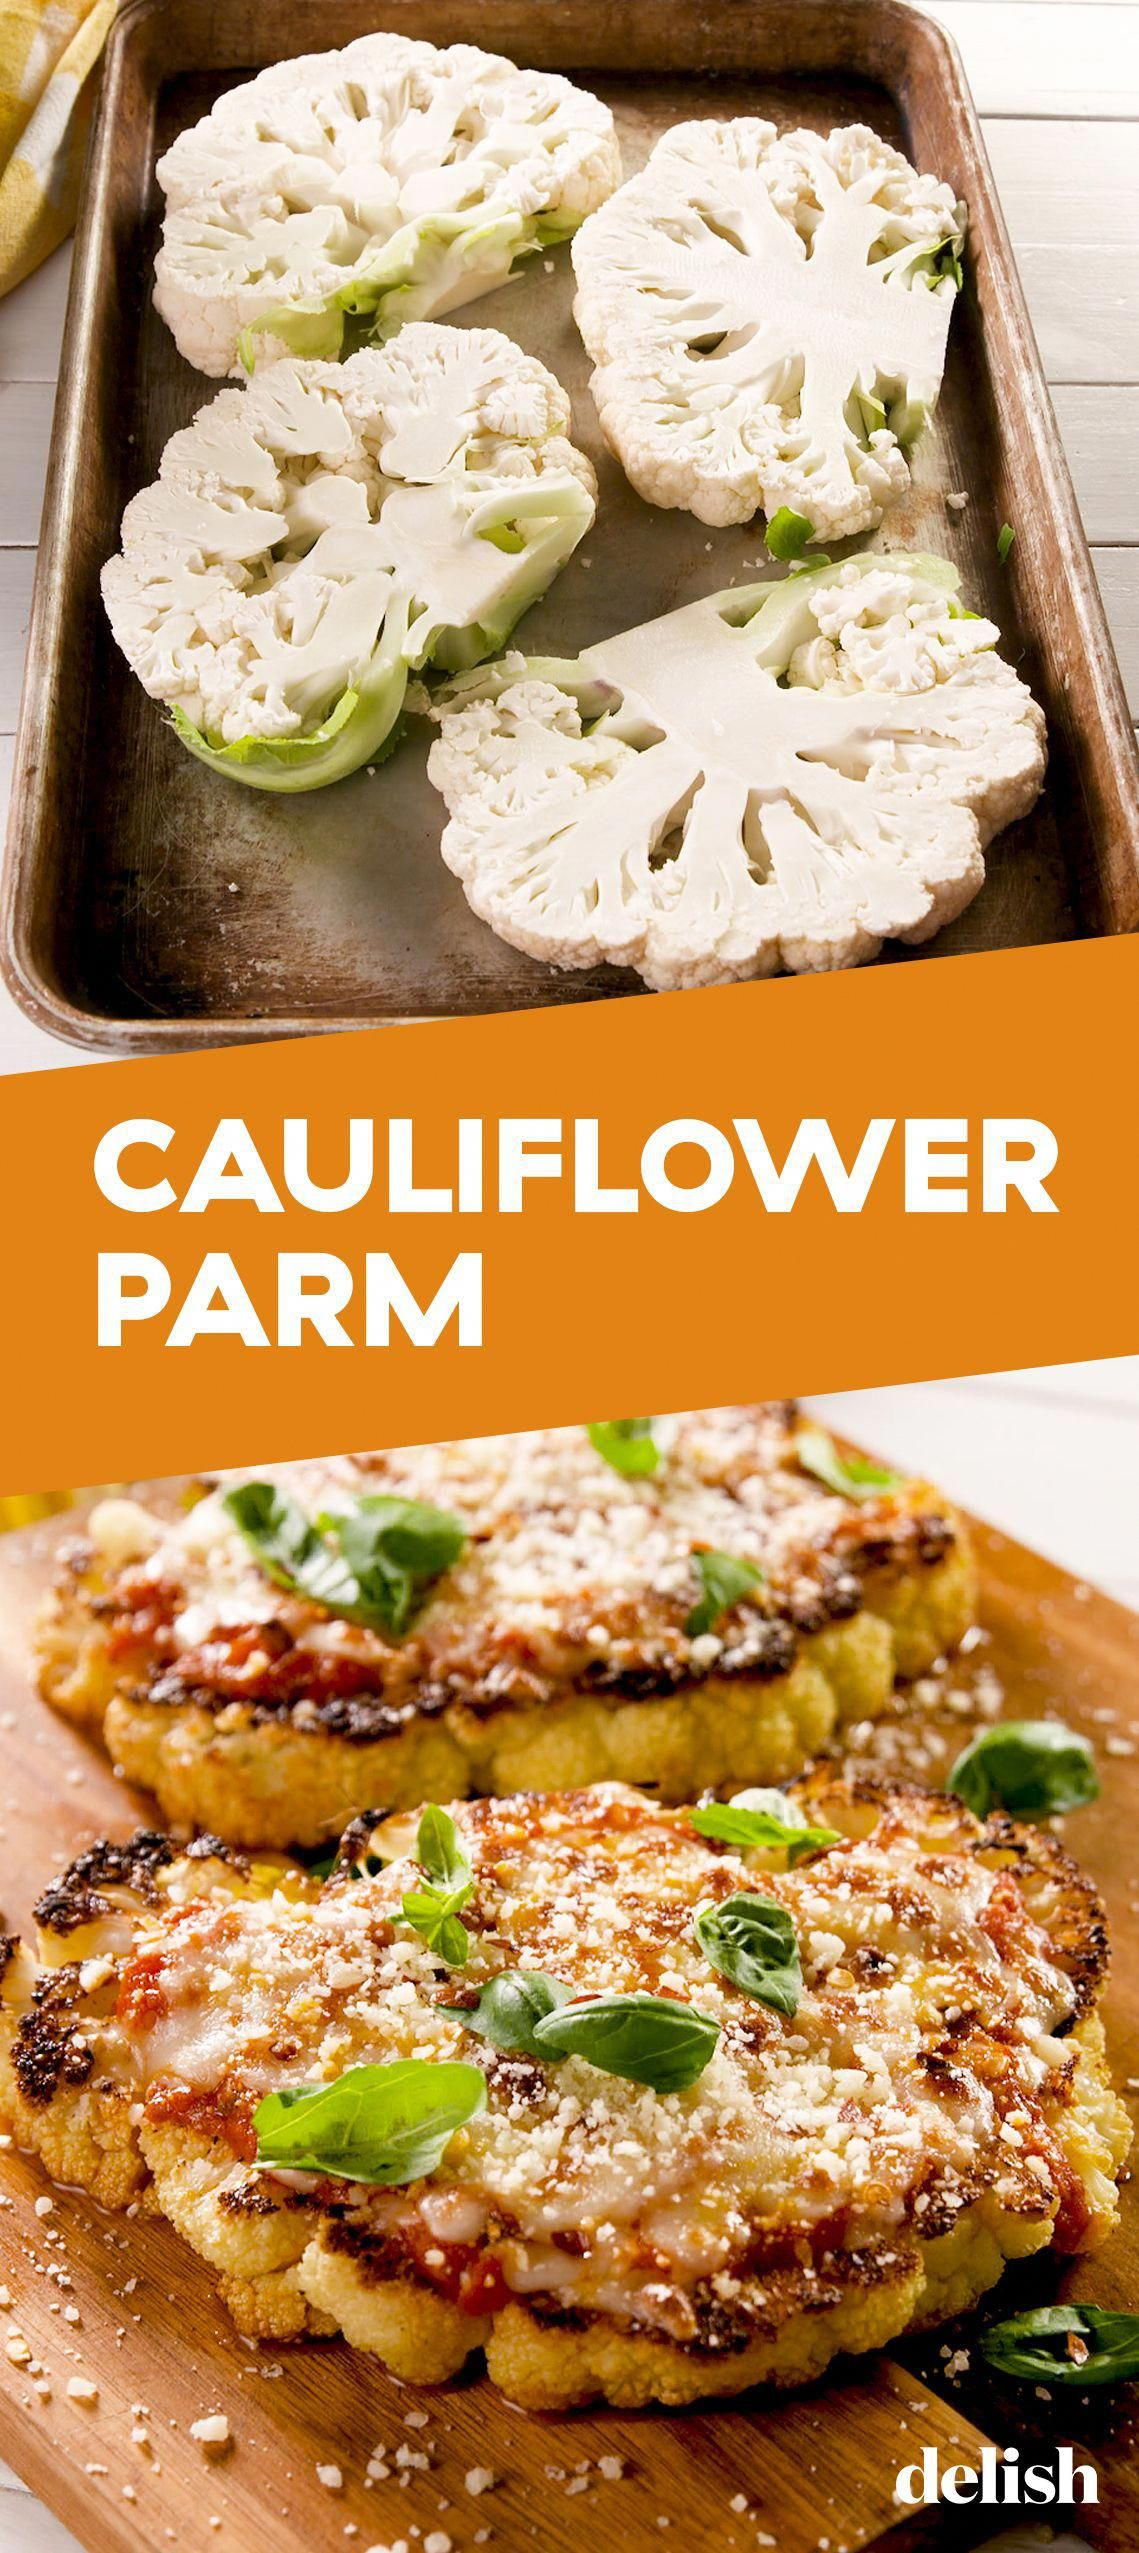 Cauliflower Parmesan Is Vegetarian Comfort Food At Its Finest